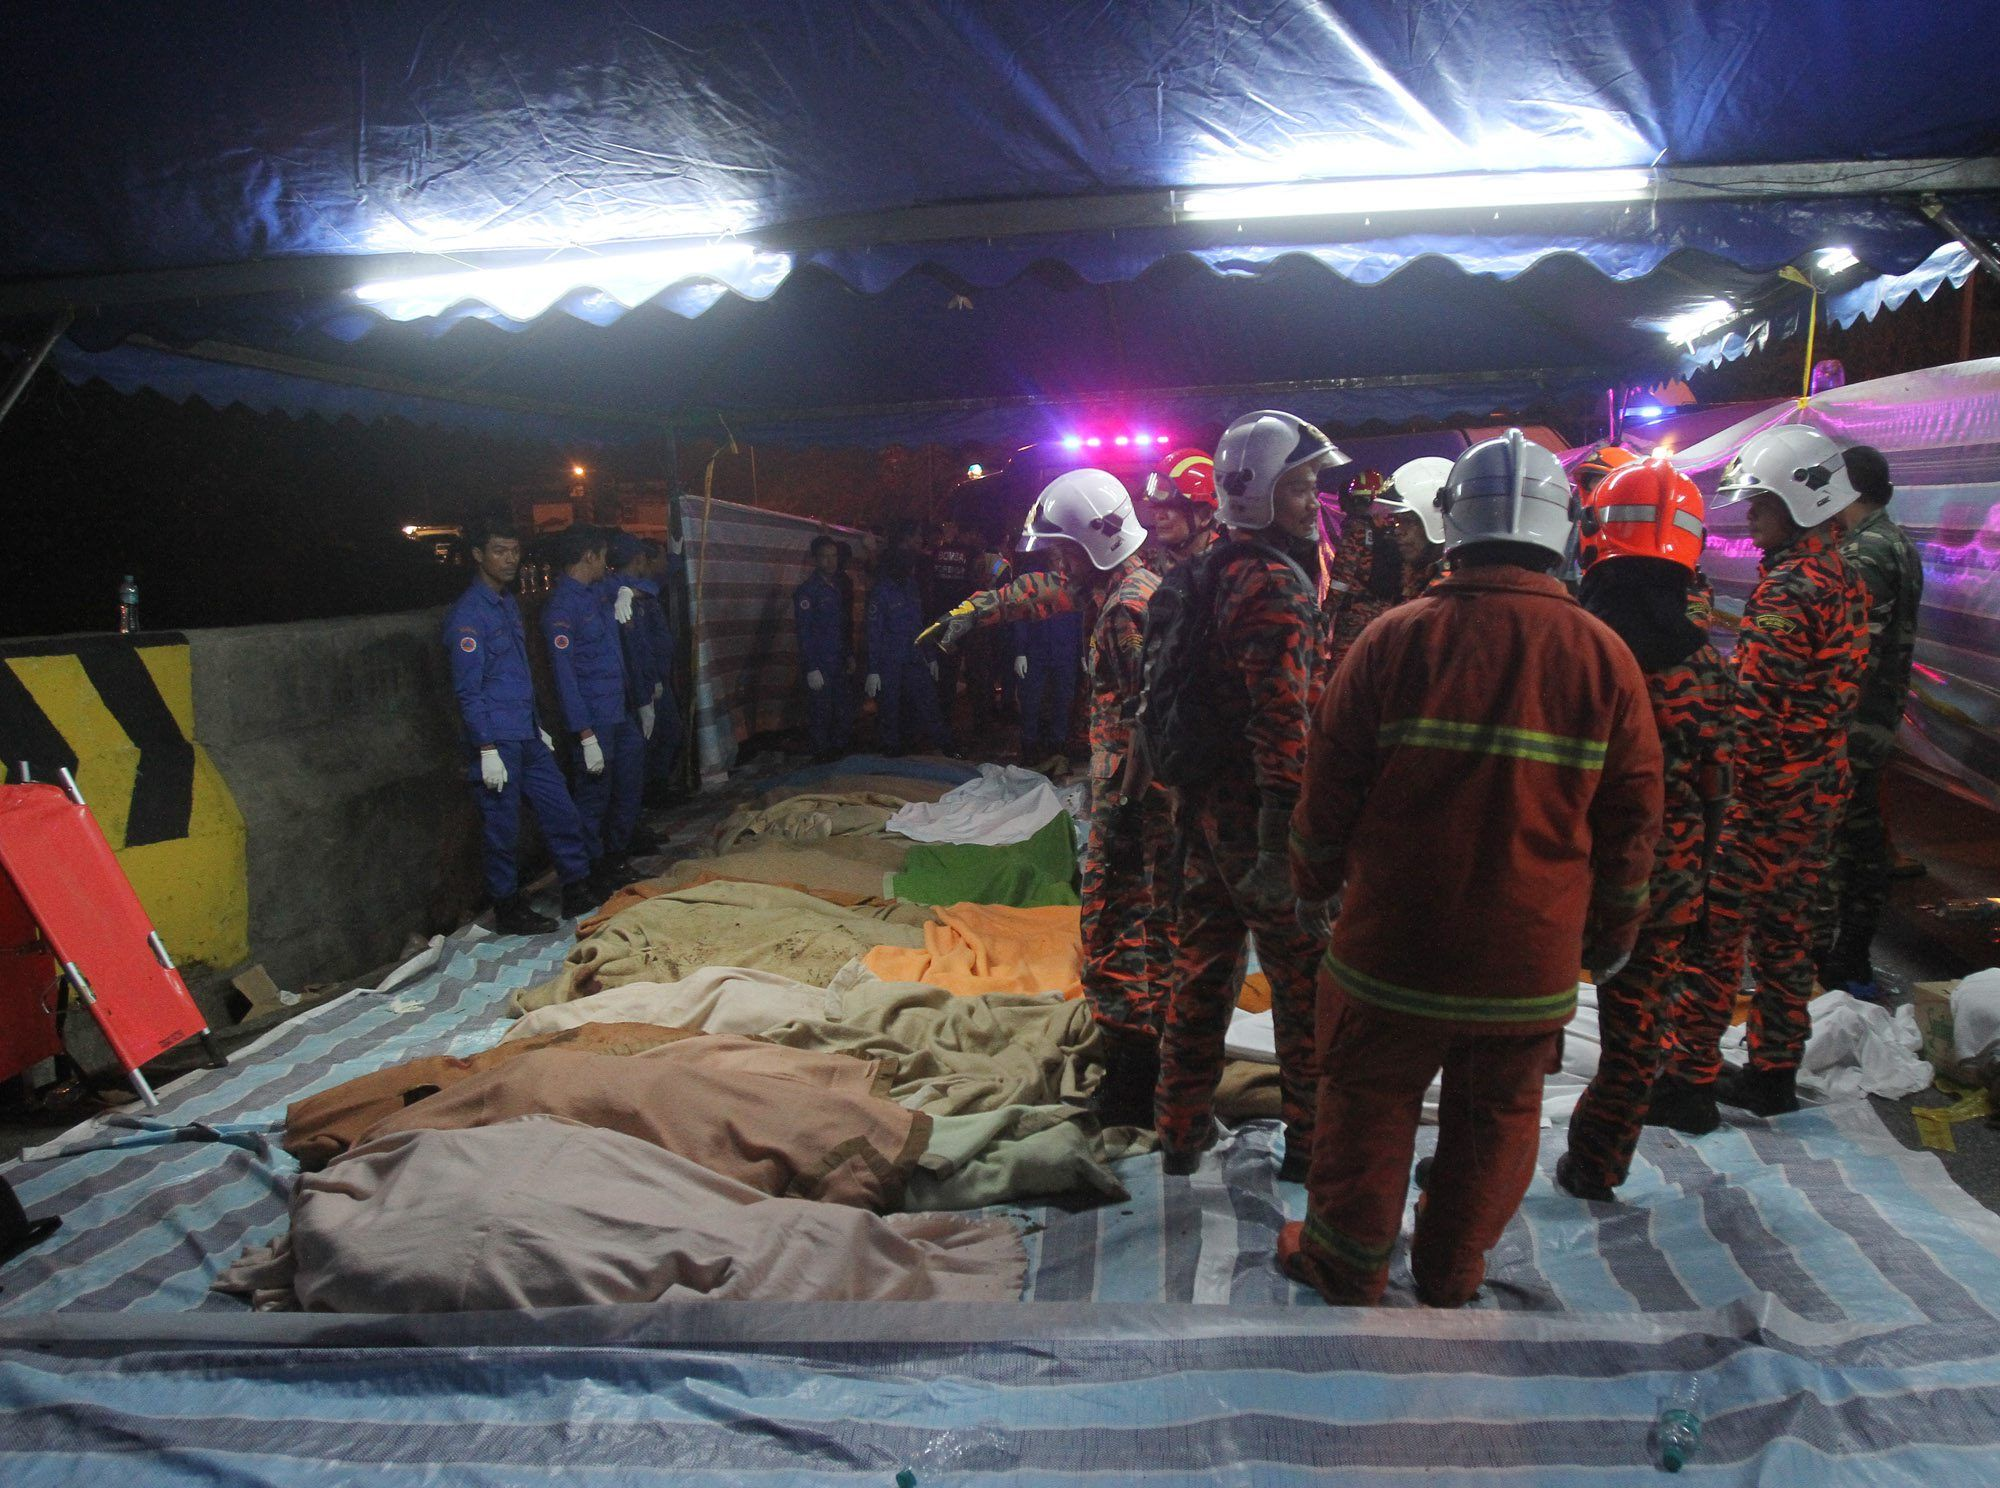 Rescuers inspecting the bodies of victims laying on the ground in Genting Highlands Wednesday.